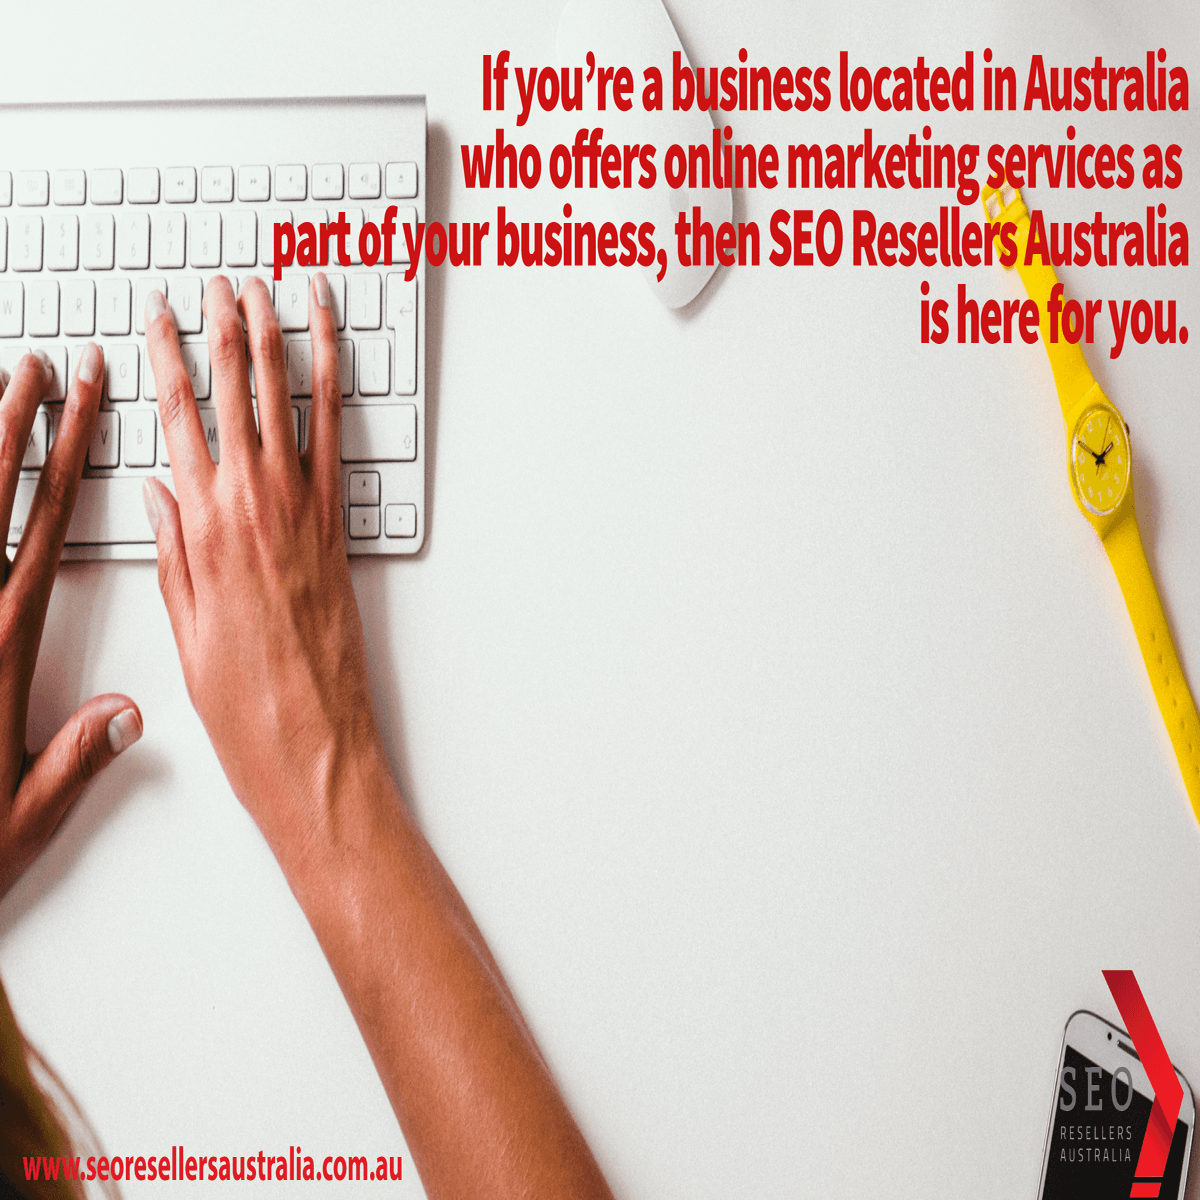 Here is how we can help you grow. Drop us an e-mail at team@seoresellersaustralia.com.au and we'll get back to you. #socialmedia #digitalmedia #seoresellers #marketing   #business #Australia